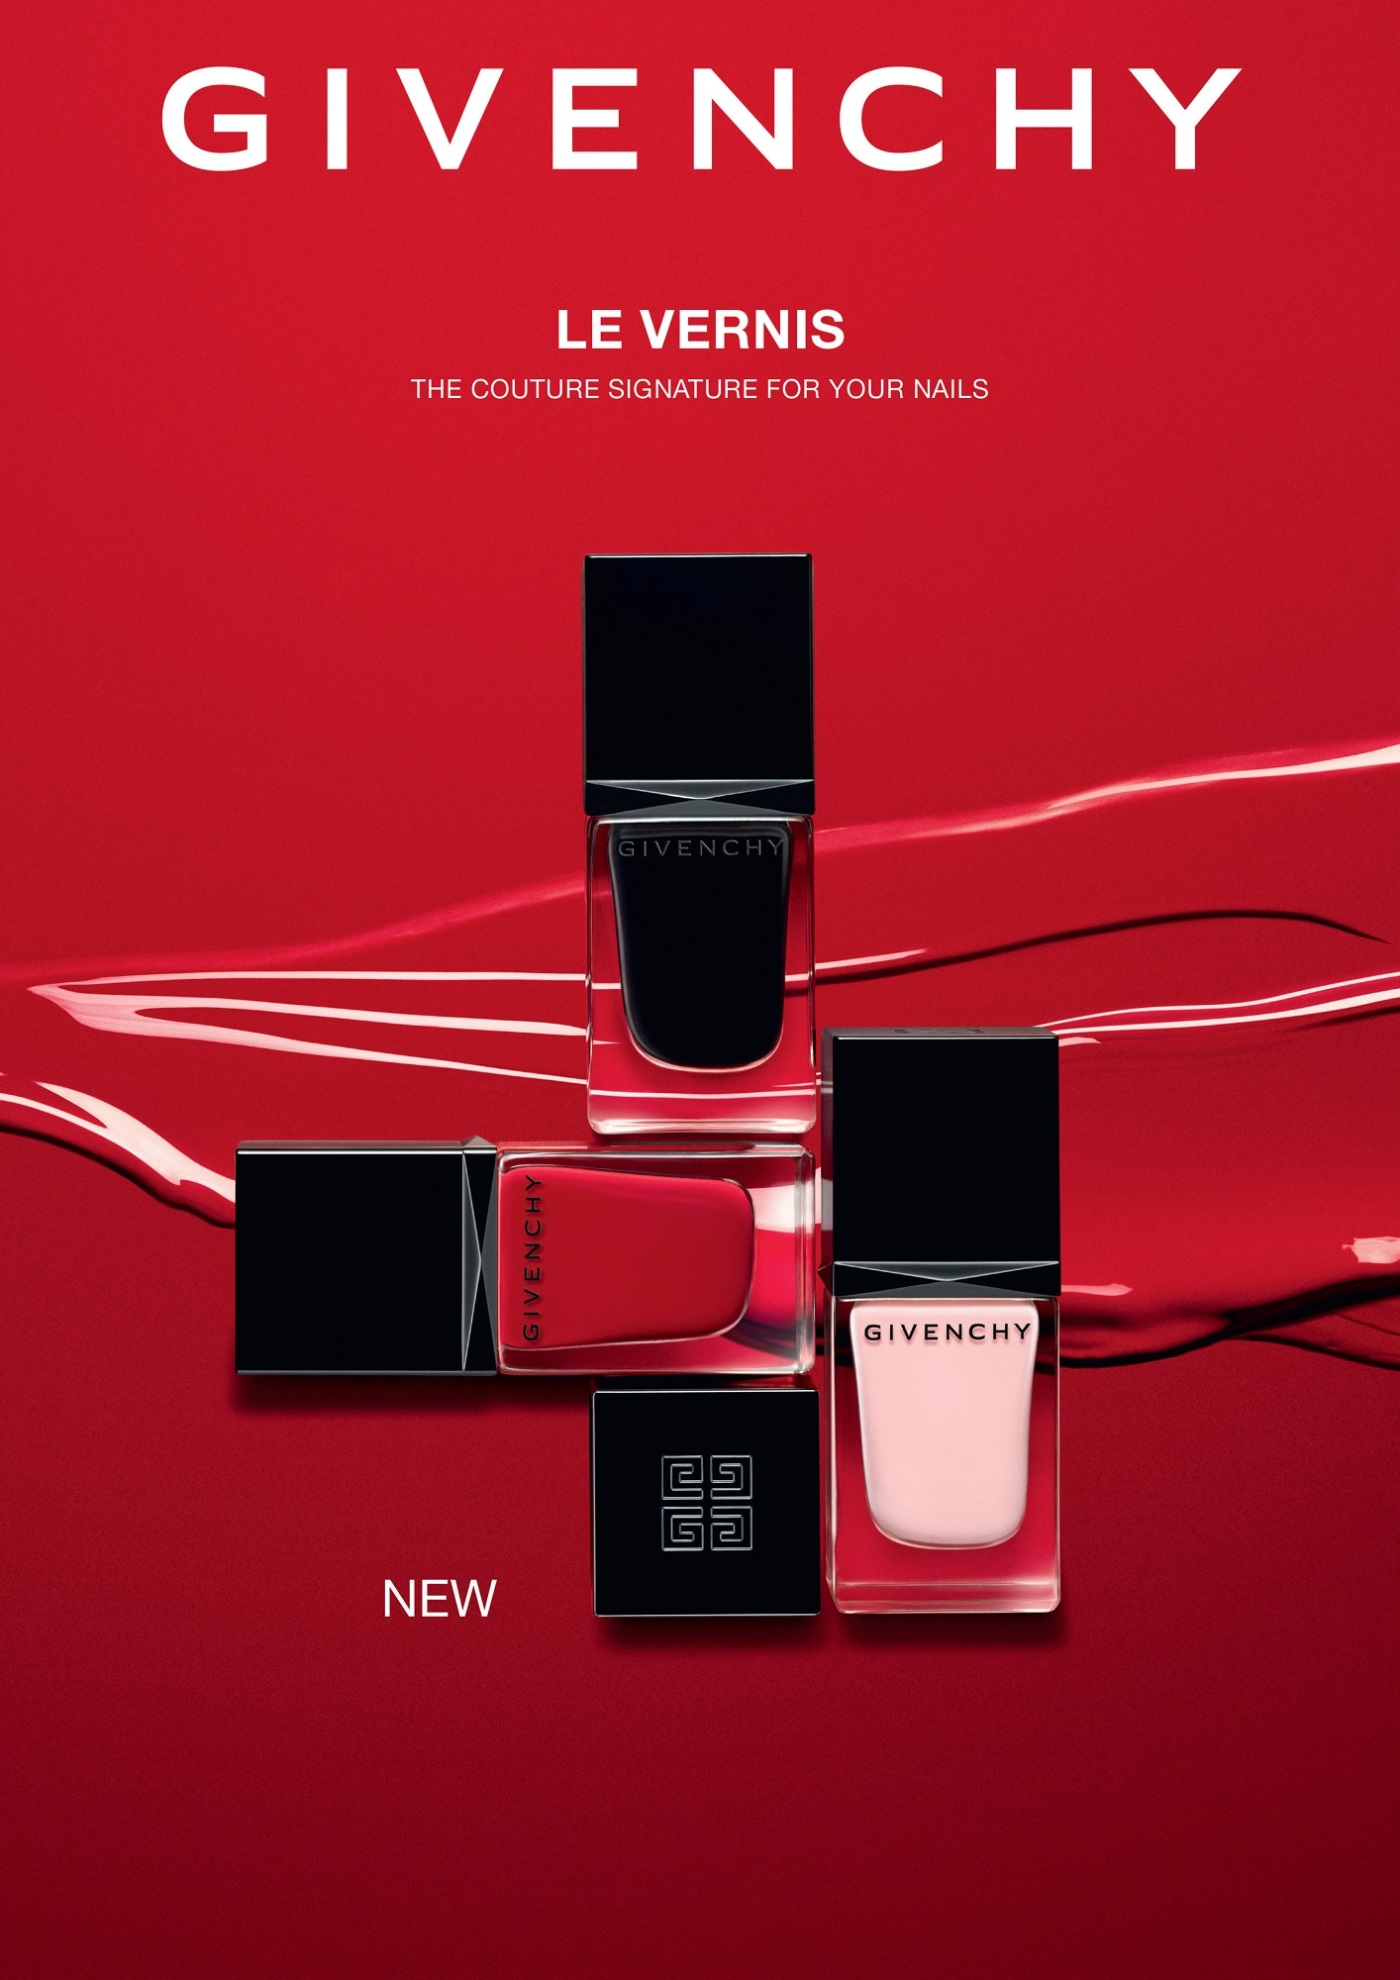 Givenchy-le-vernis-new